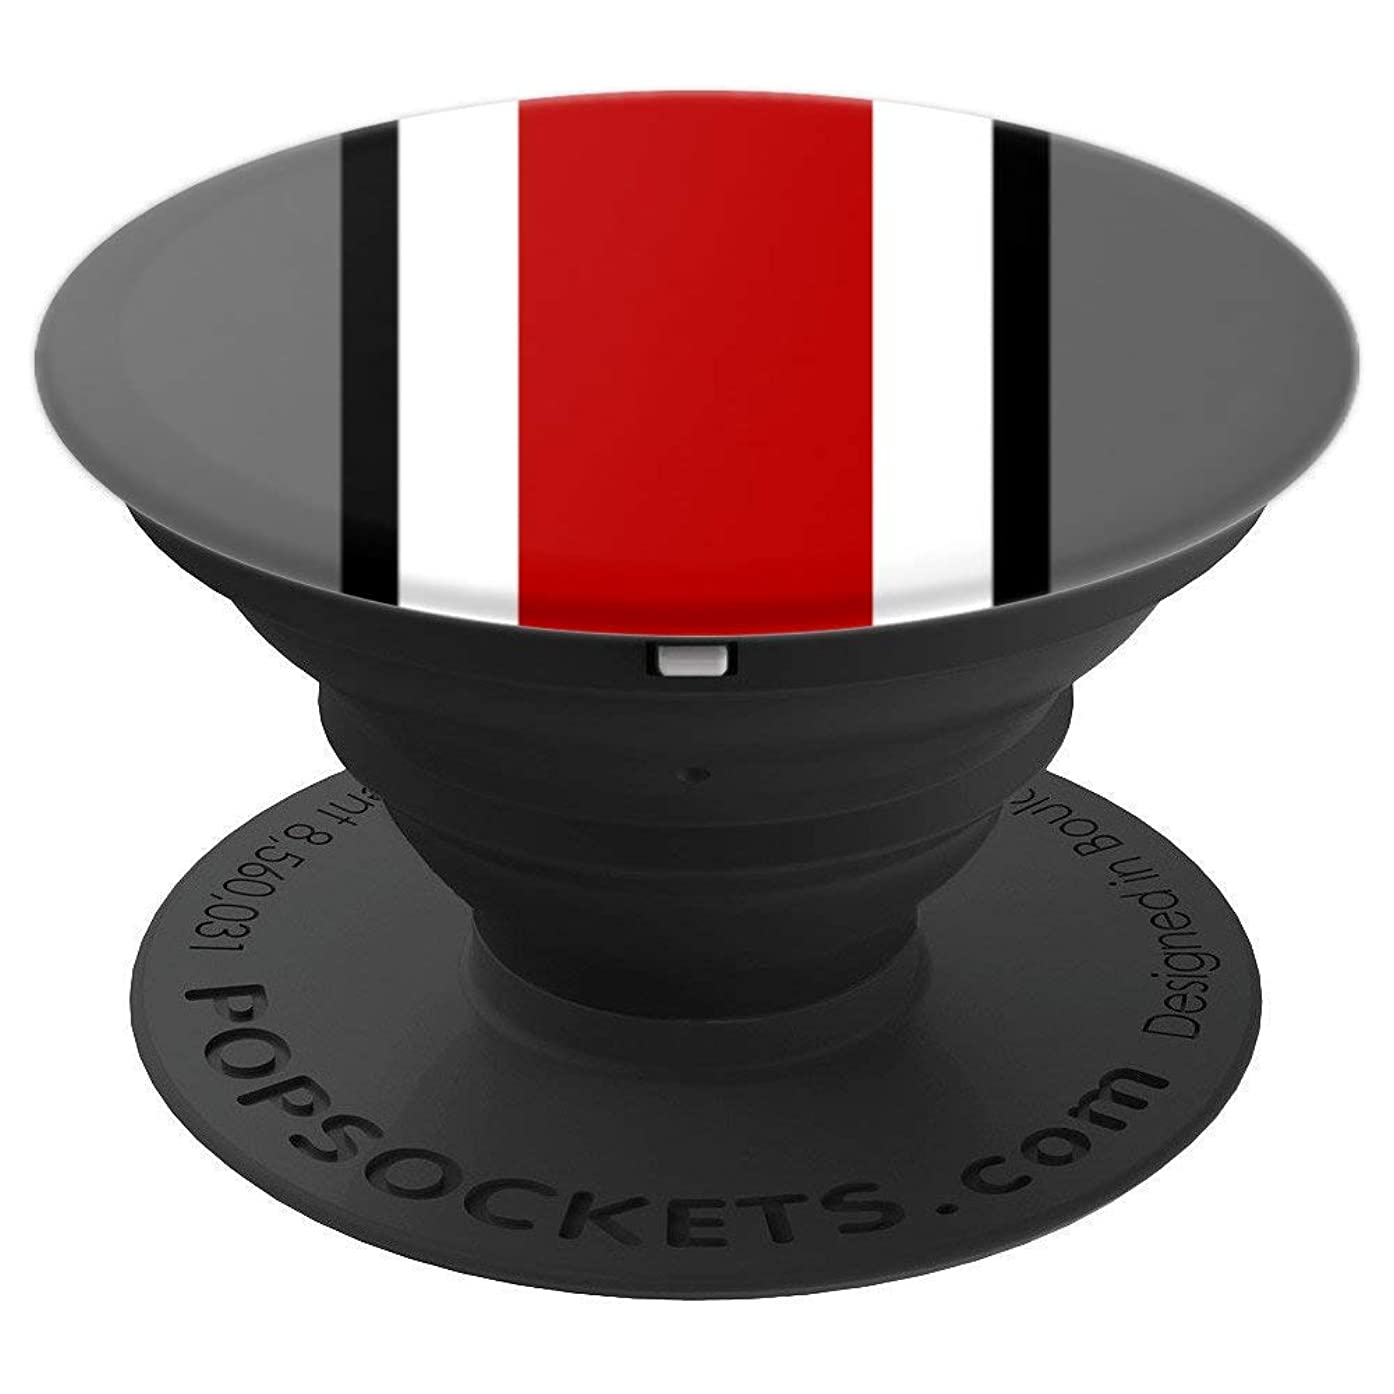 Ohio, Home State Pride, Red and Gray Striped - PopSockets Grip and Stand for Phones and Tablets